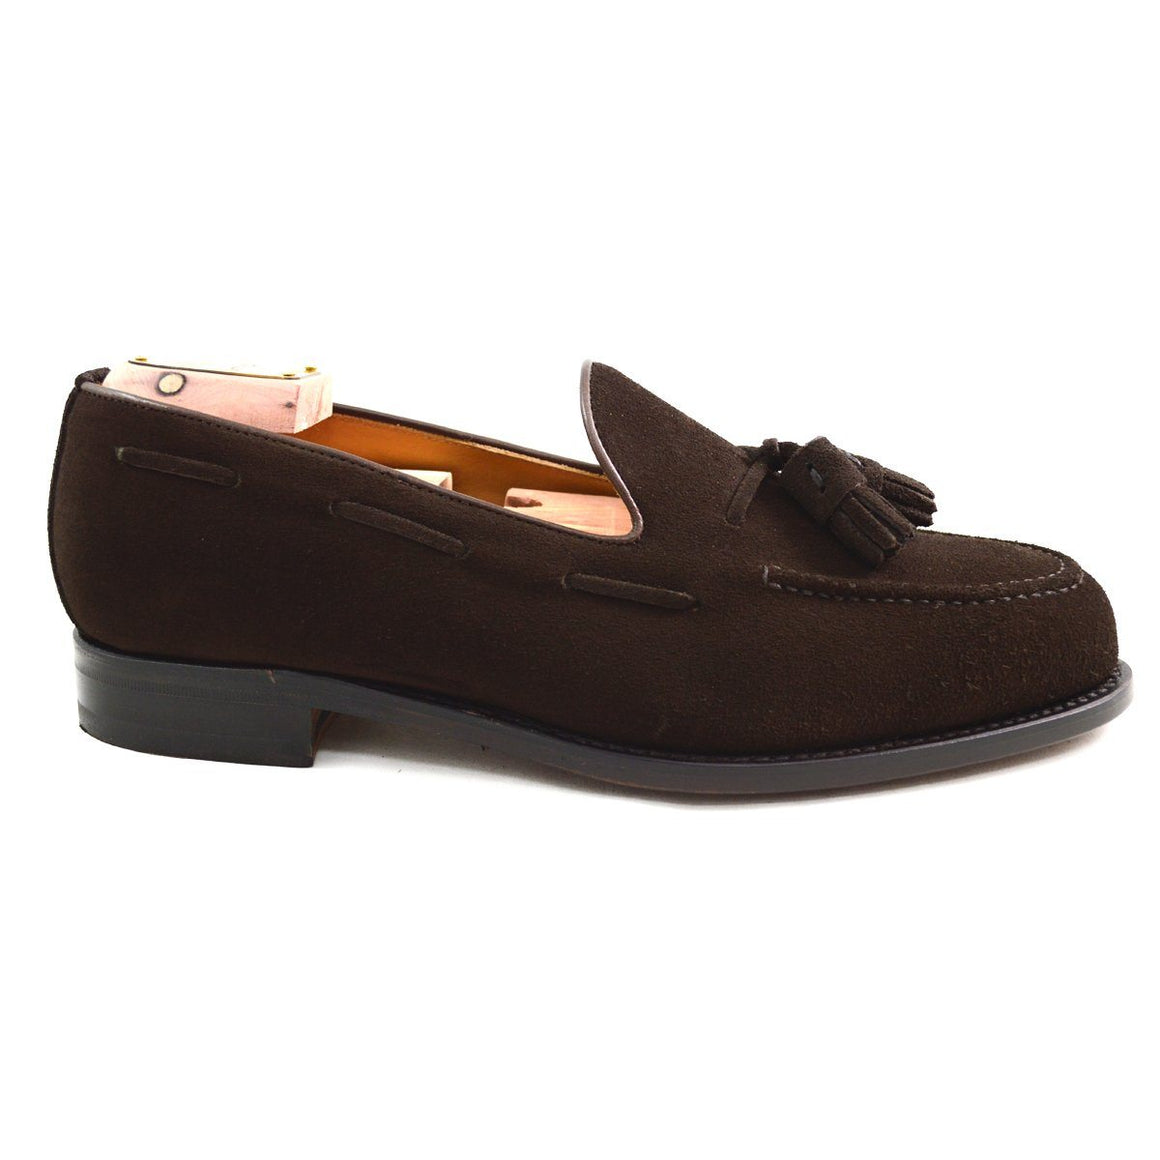 Berwick 1707 Tasselled Slip On - Dark Brown Suede